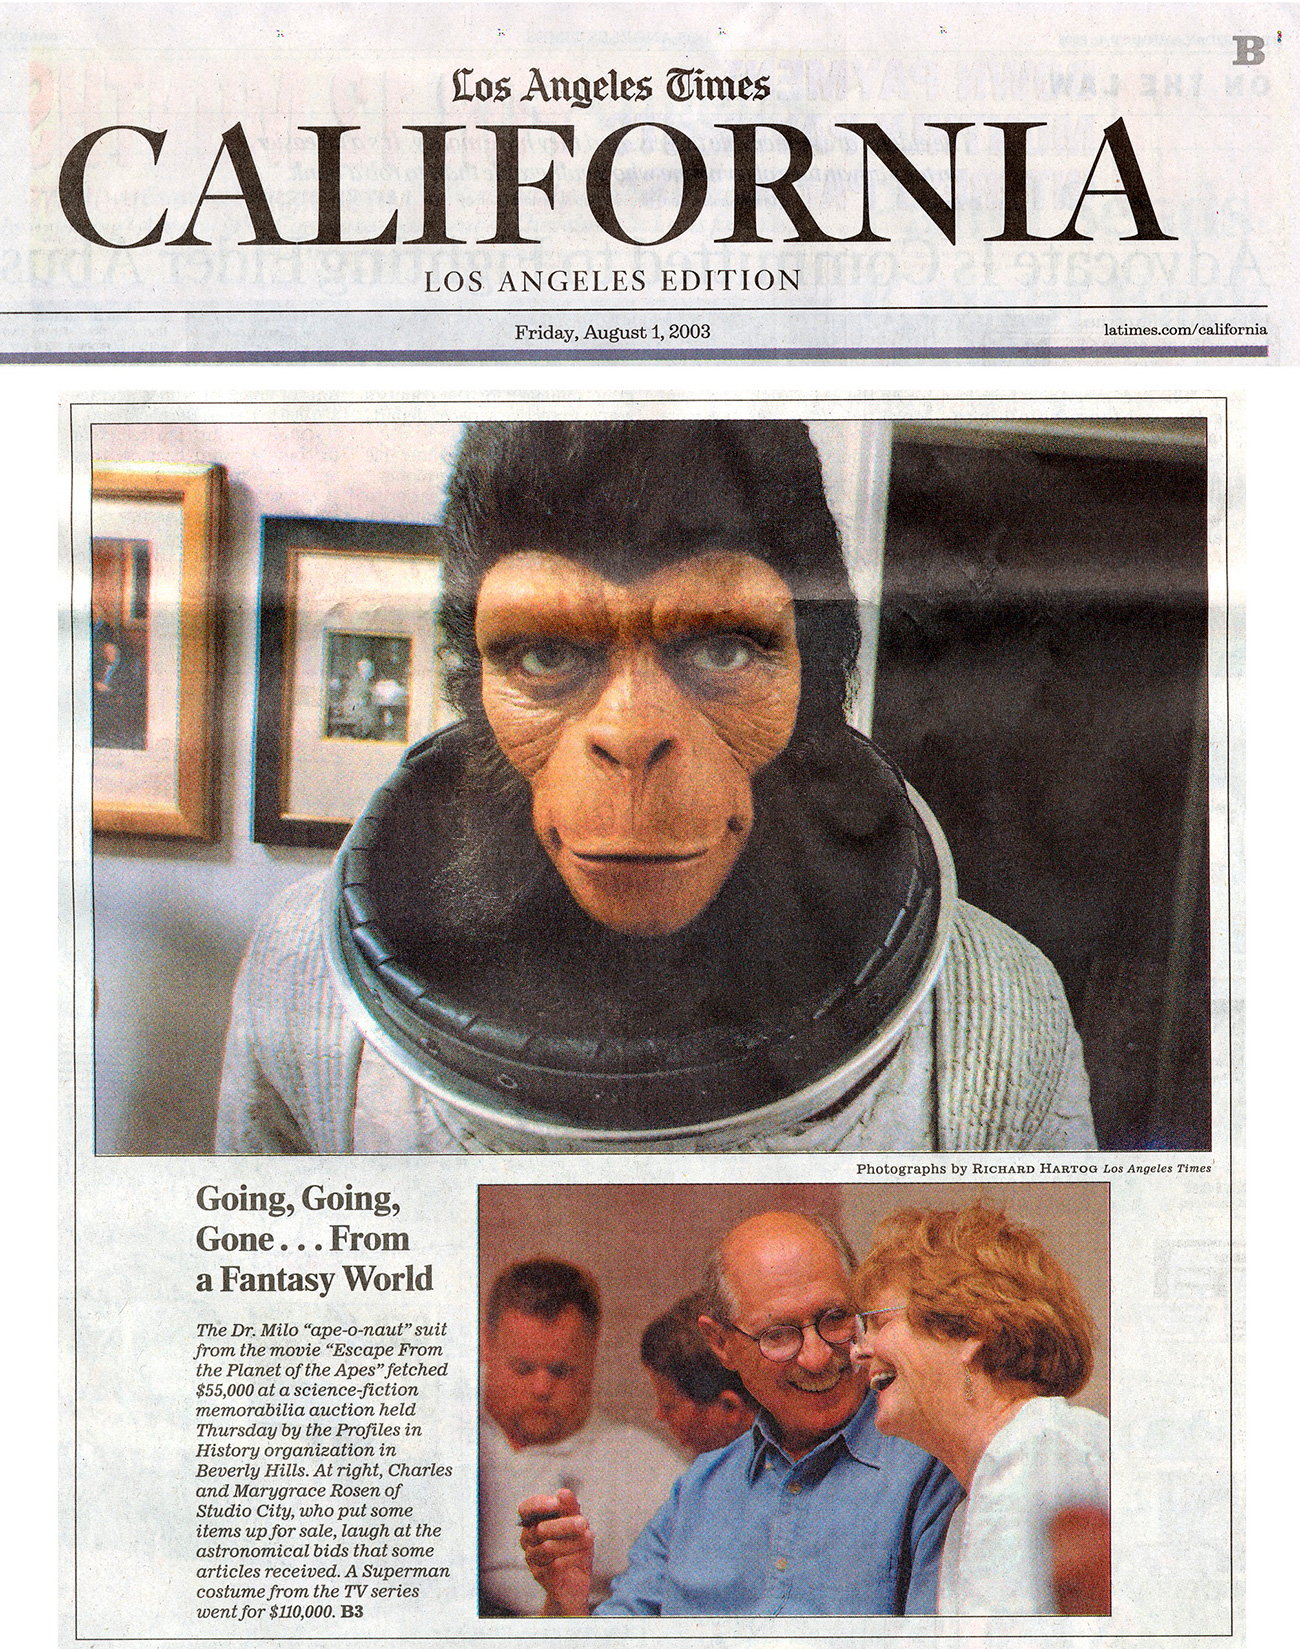 los angeles times cover, california going going gone from fantasy world, photo of ape on cover.